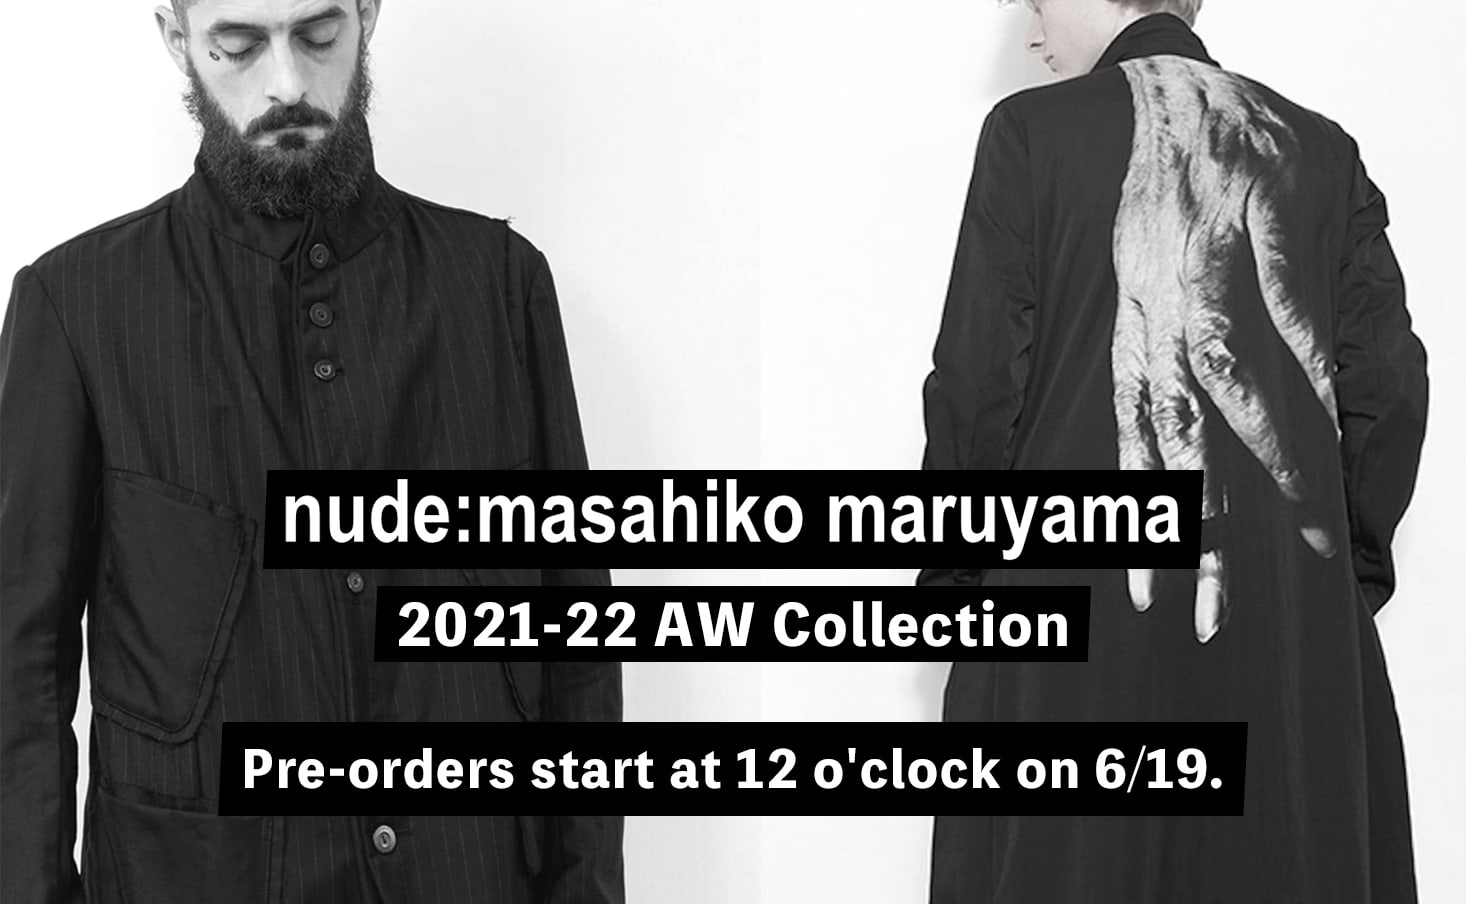 nude: masahiko maruyama 21-22 AW collection Reservations start on June 19 at 12PM!